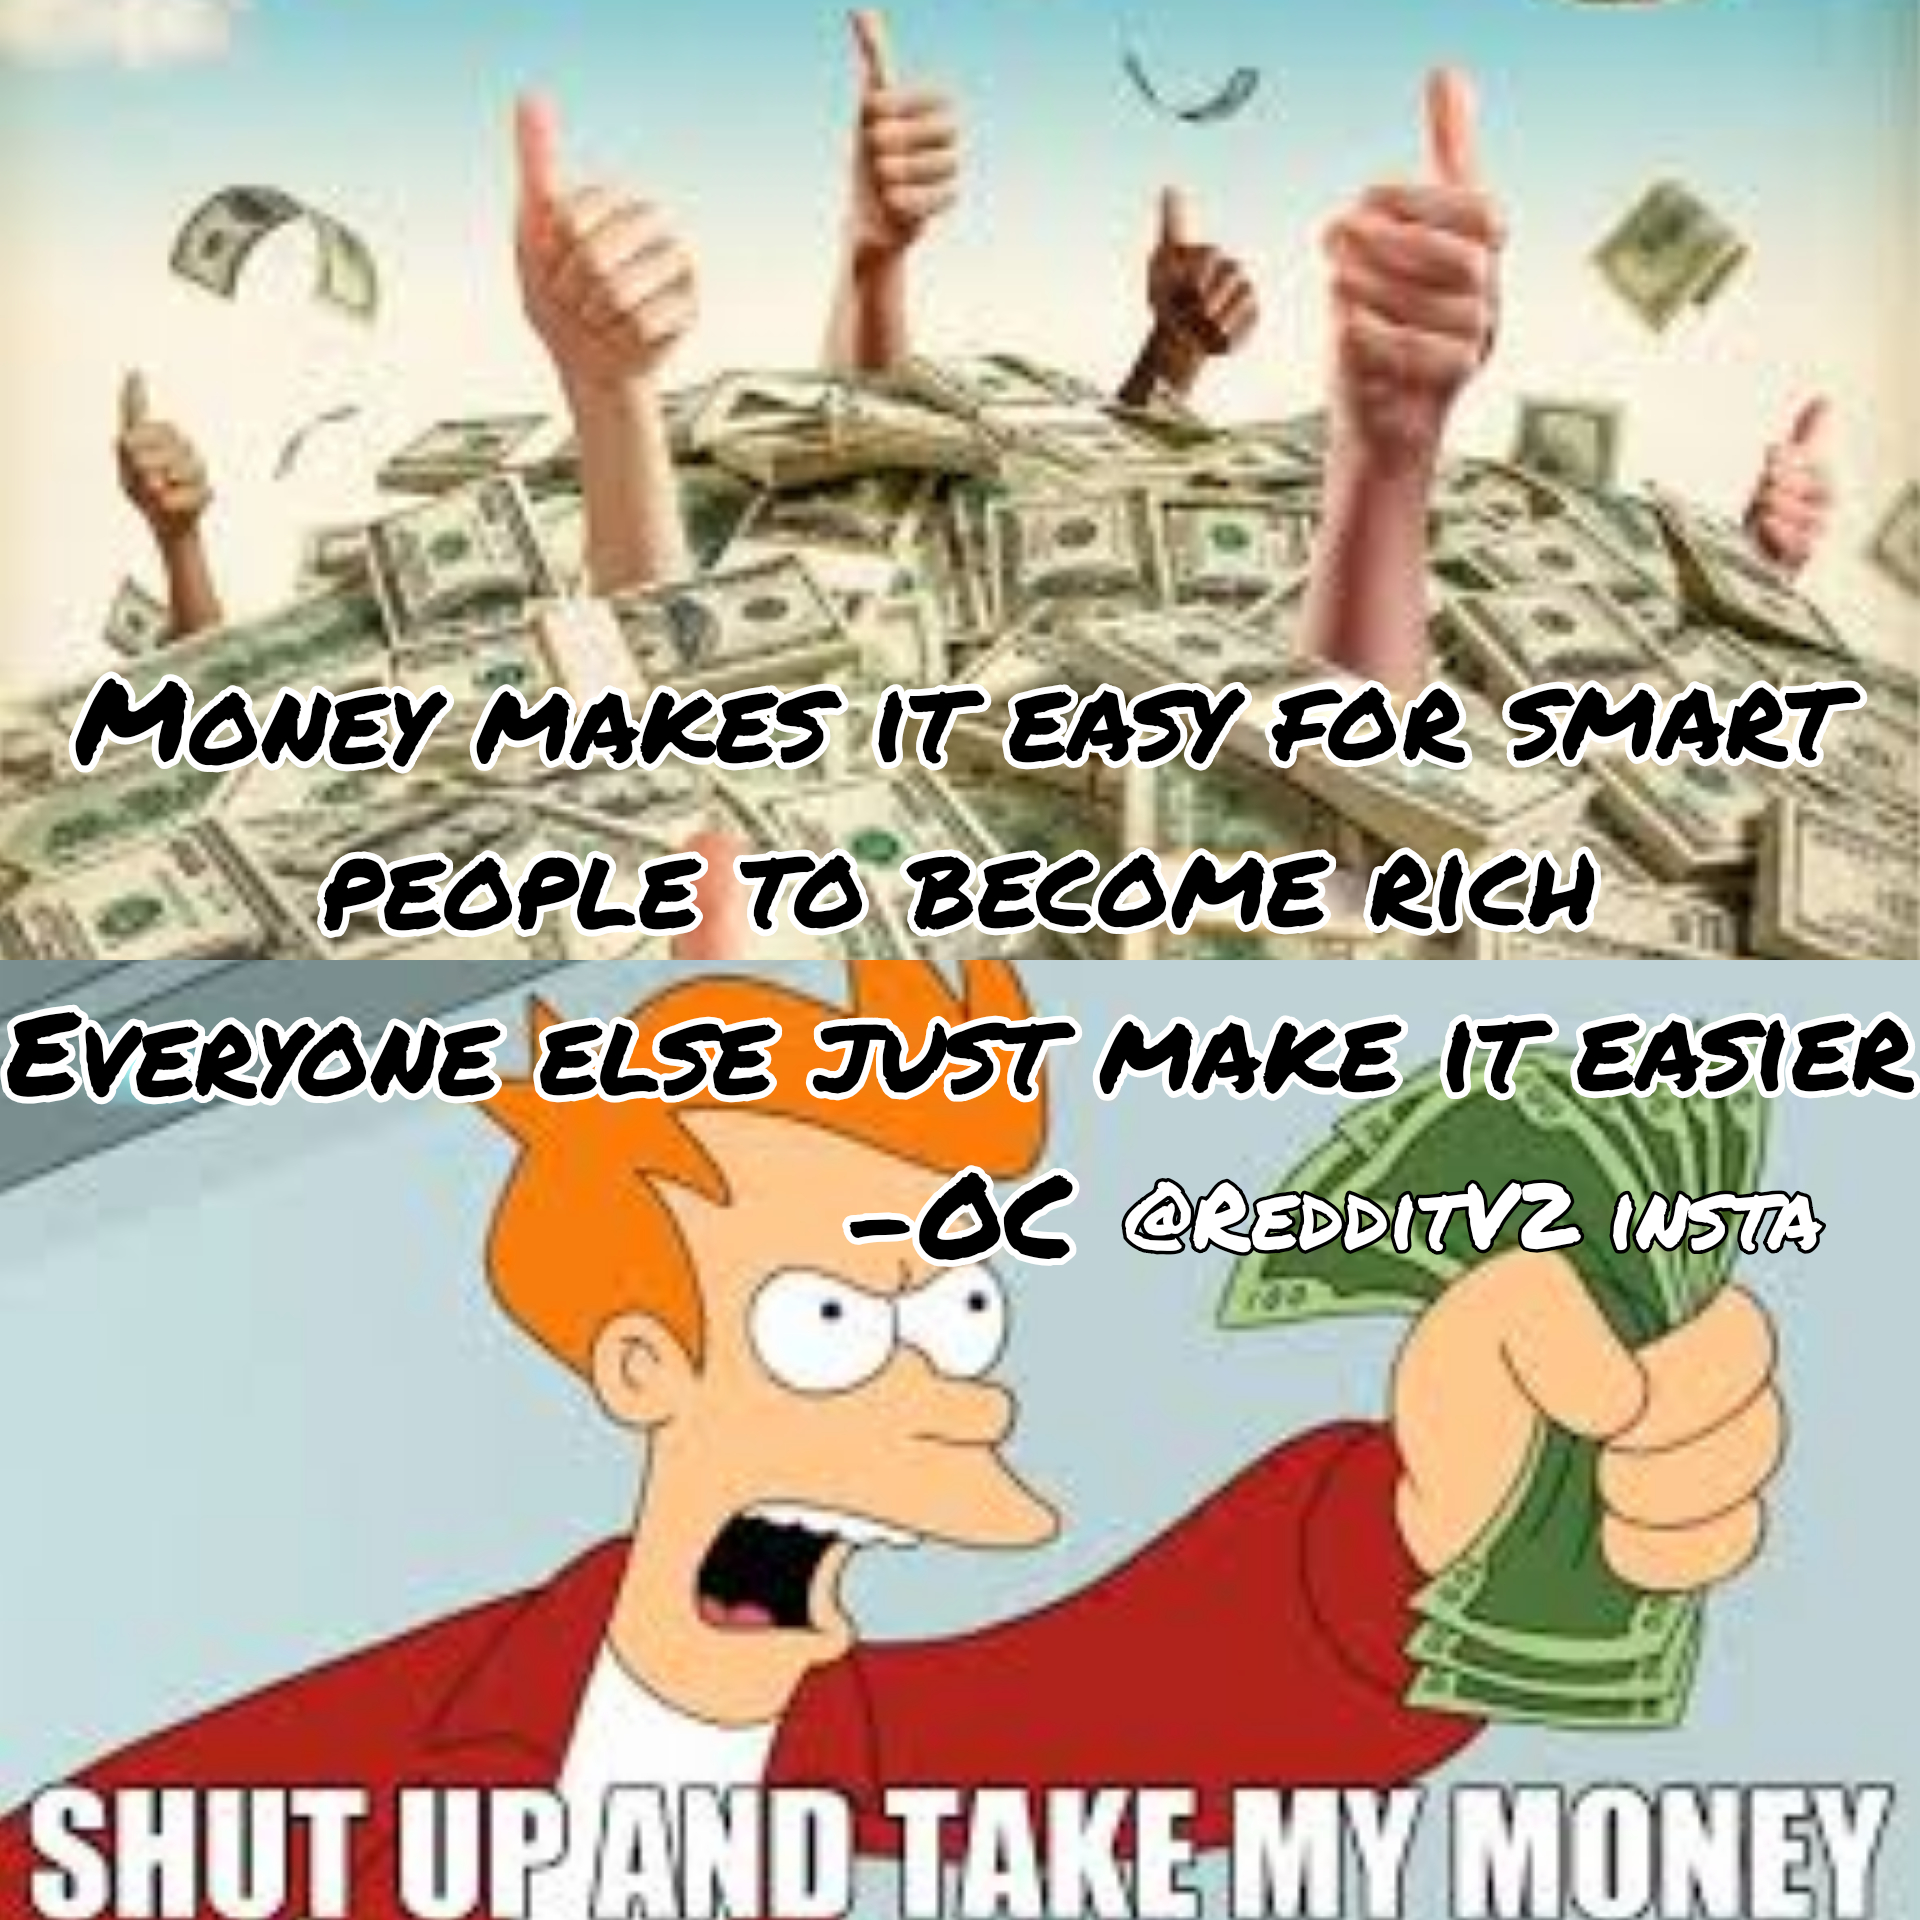 """Money makes it easy for smart people to become rich, everyone else just makes it easier"" by Me [OC] 